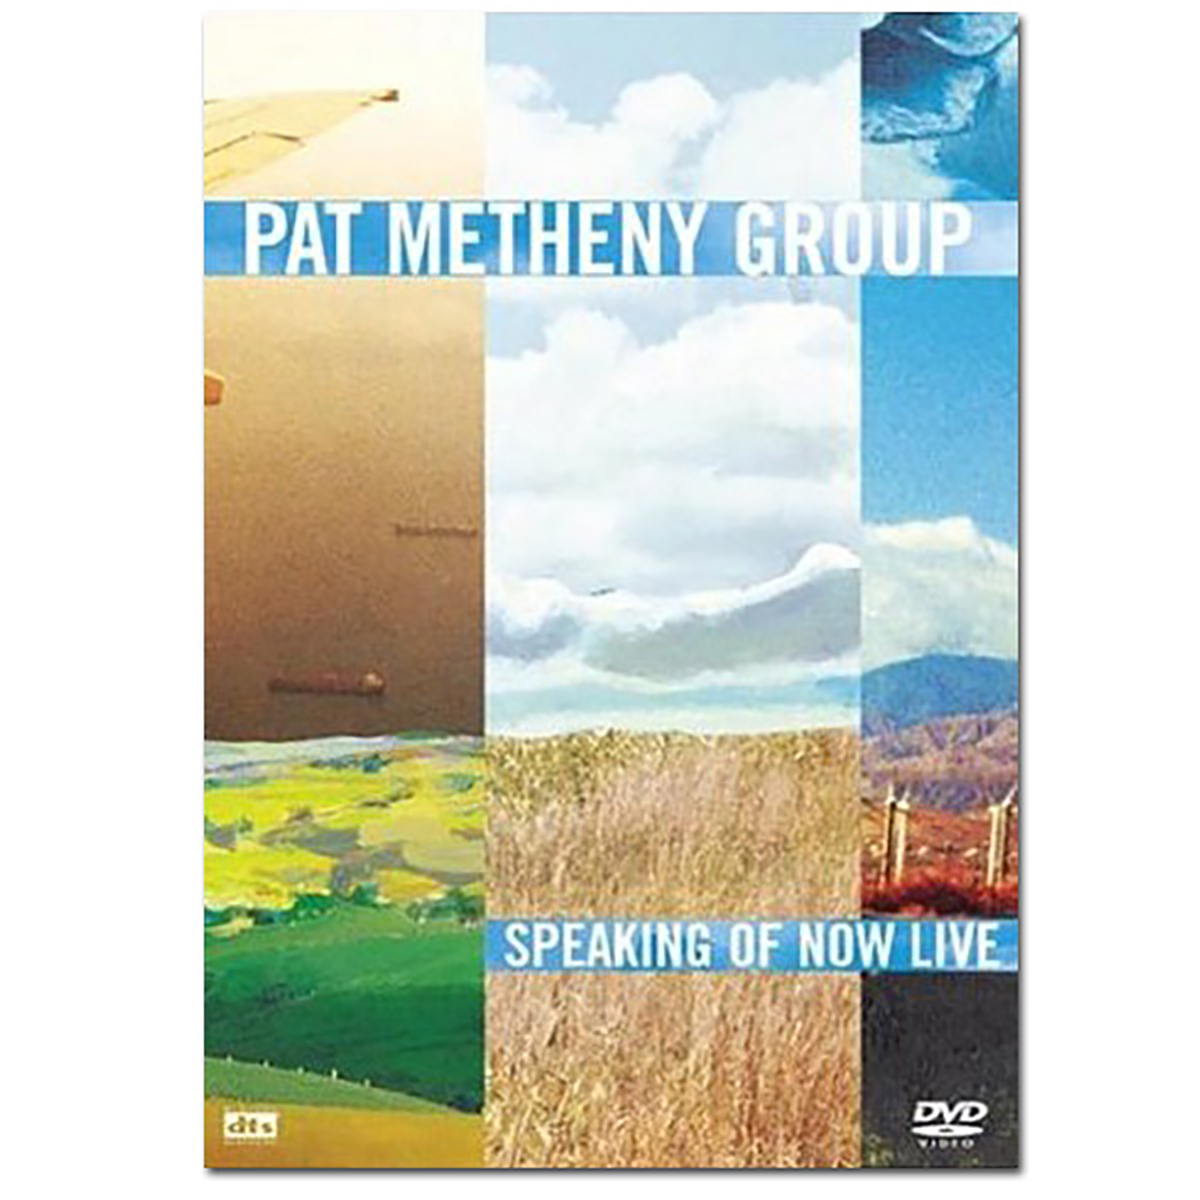 Pat Metheny - Speaking of Now DVD